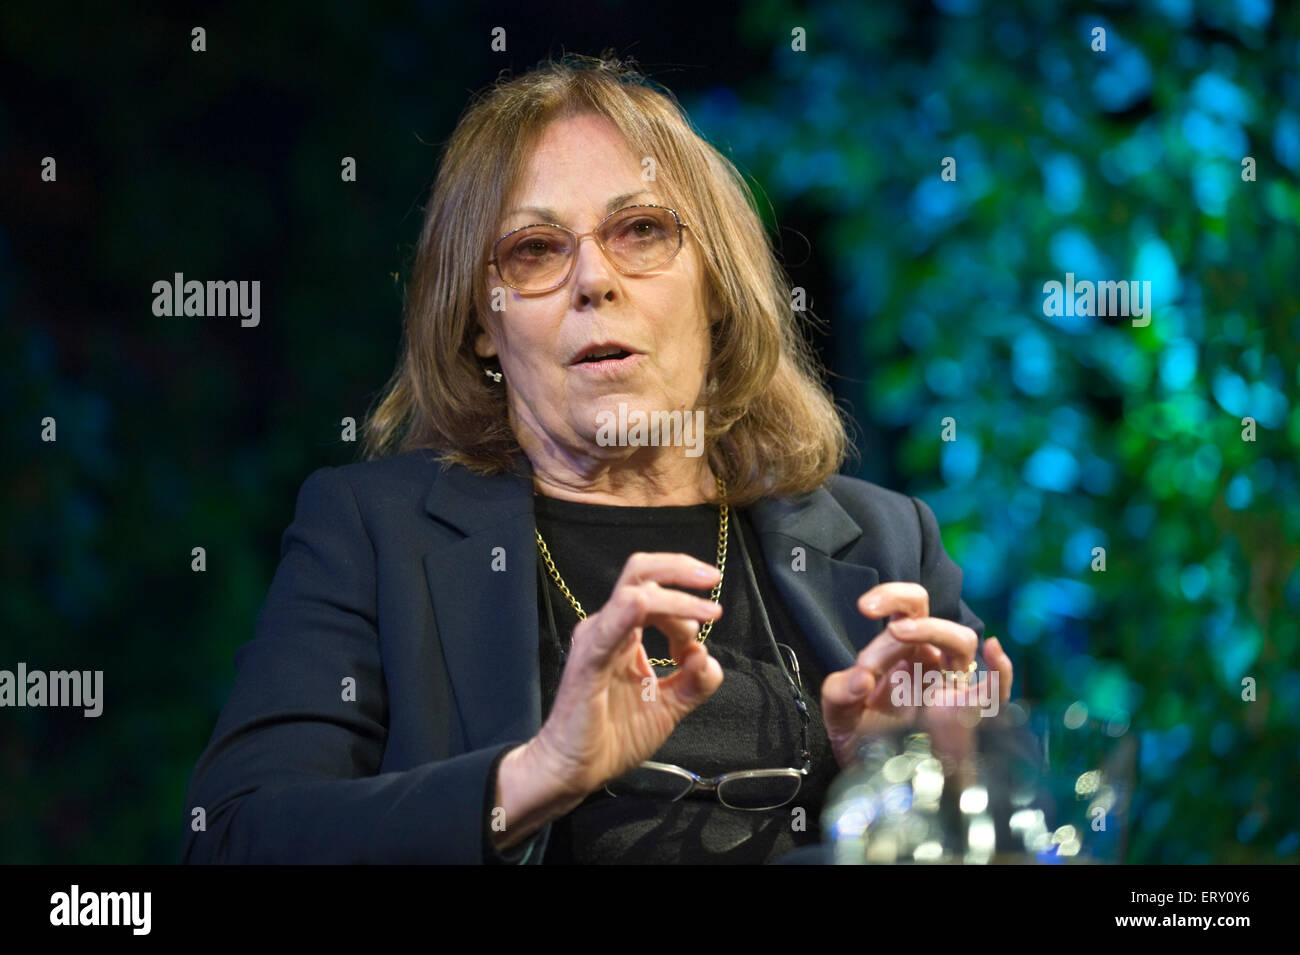 Rose Tremain novelist speaking on stage at Hay Festival 2015 - Stock Image